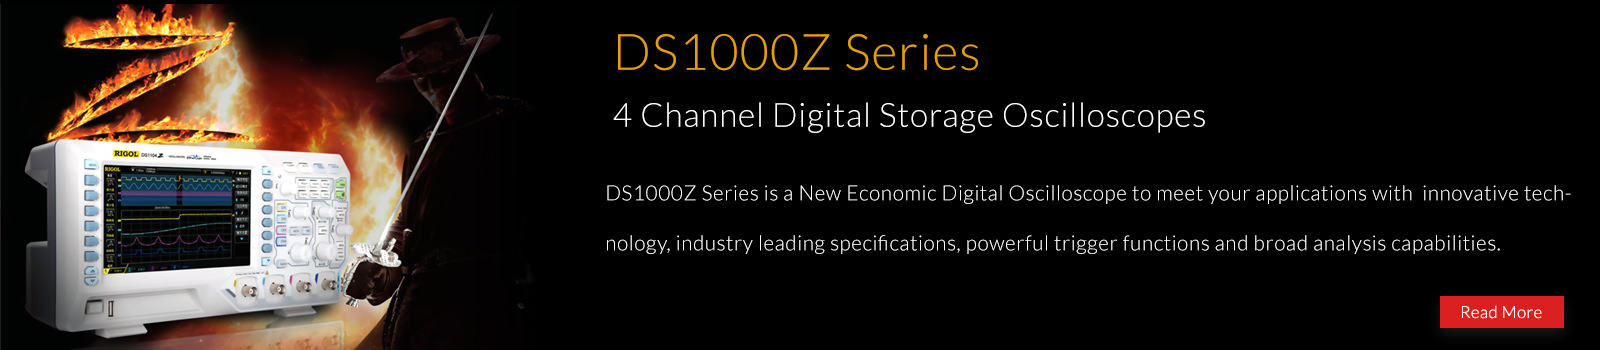 Rigol DS1000Z Series Digital Oscilloscopes